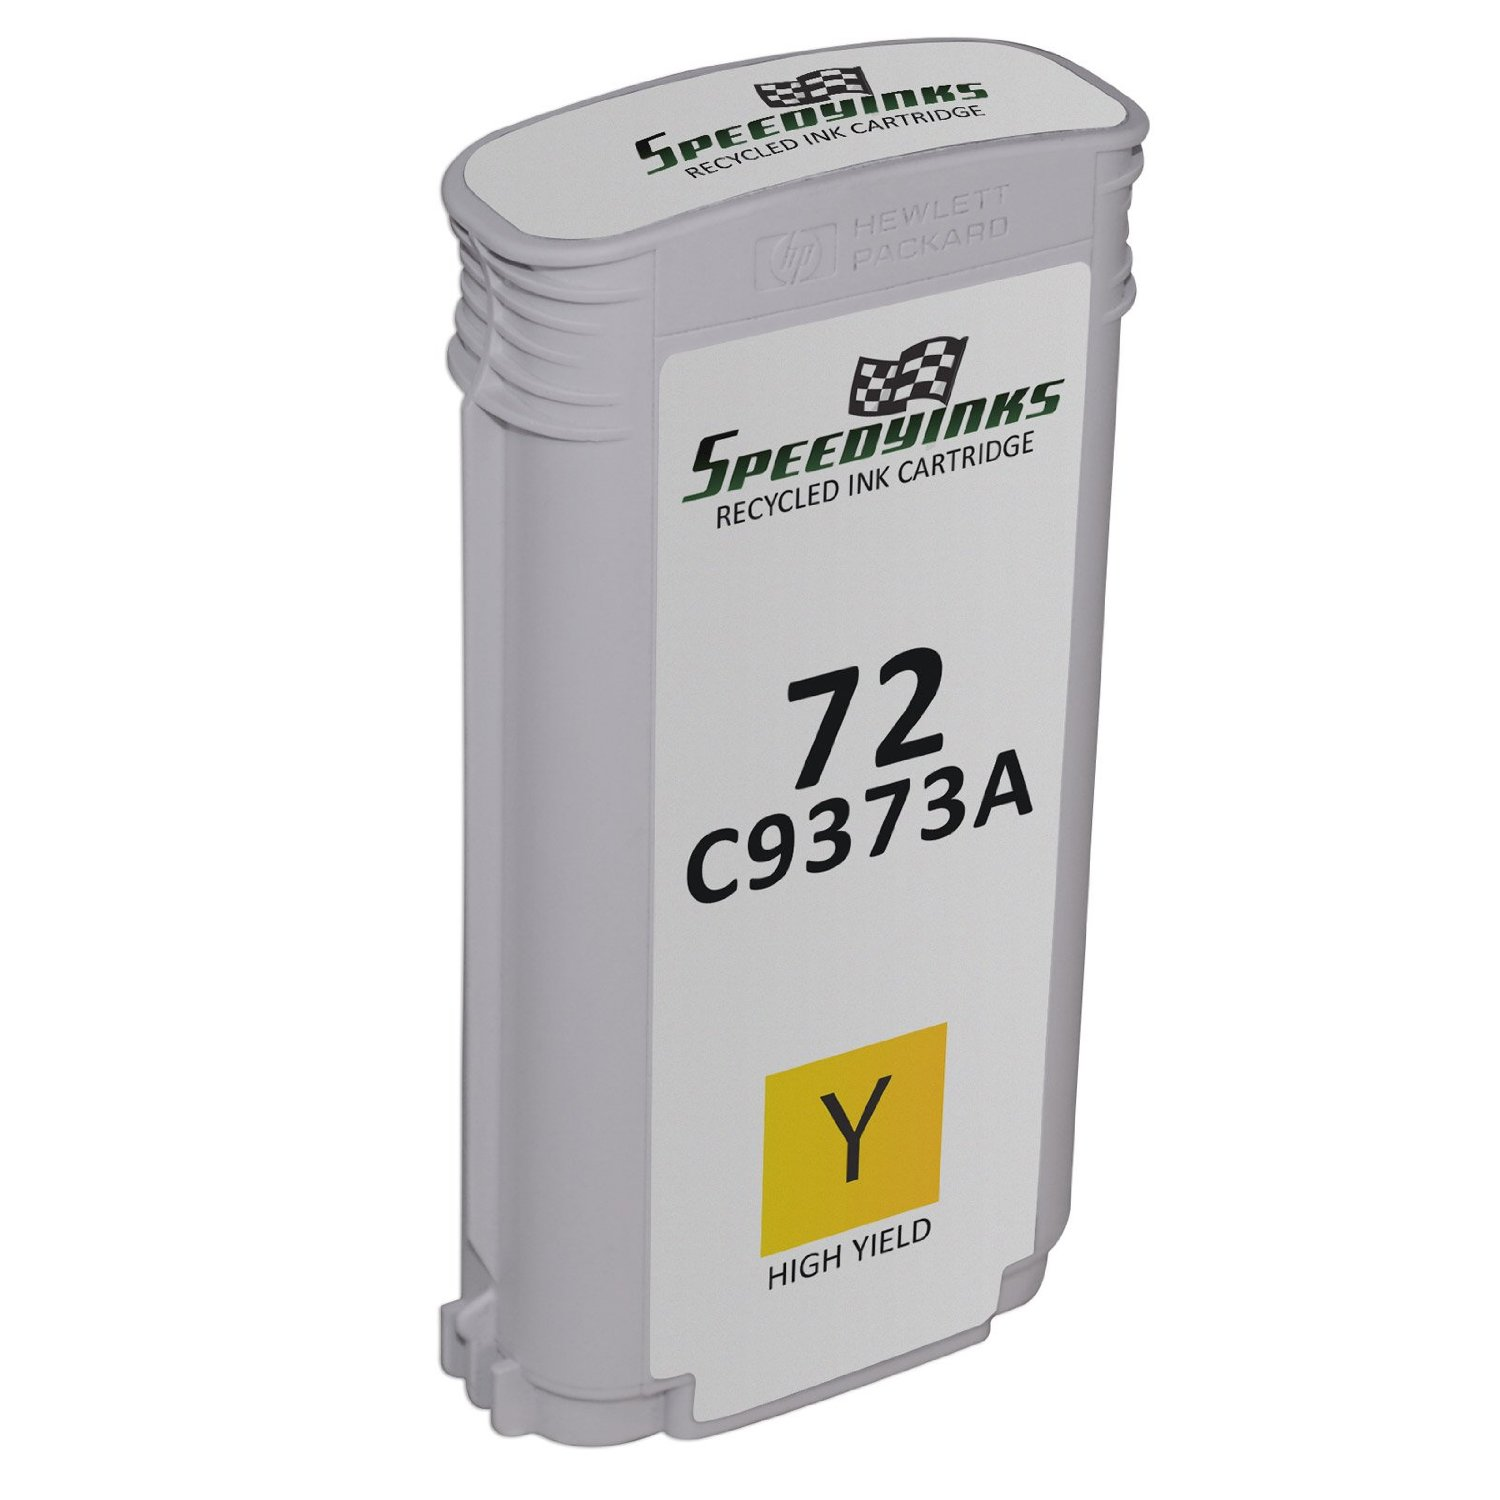 Remanufactured HP 72 ink Yellow Ink cartridge C9373A for HP Designjet T610